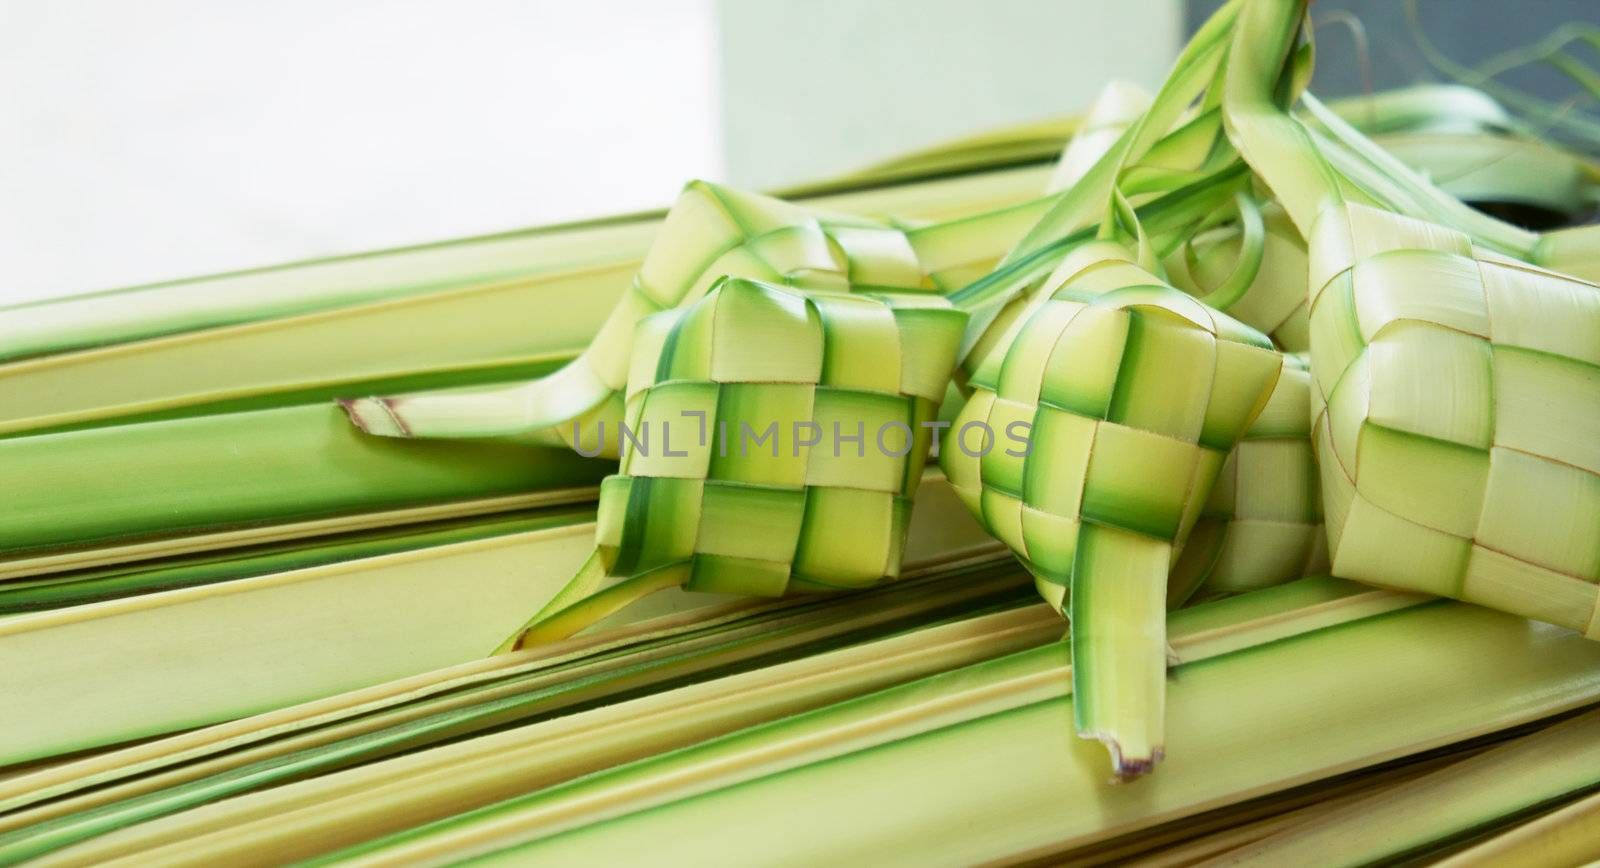 Ketupat: South East Asian rice cakes bundle, often prepared for festivities and celebratory occasions.